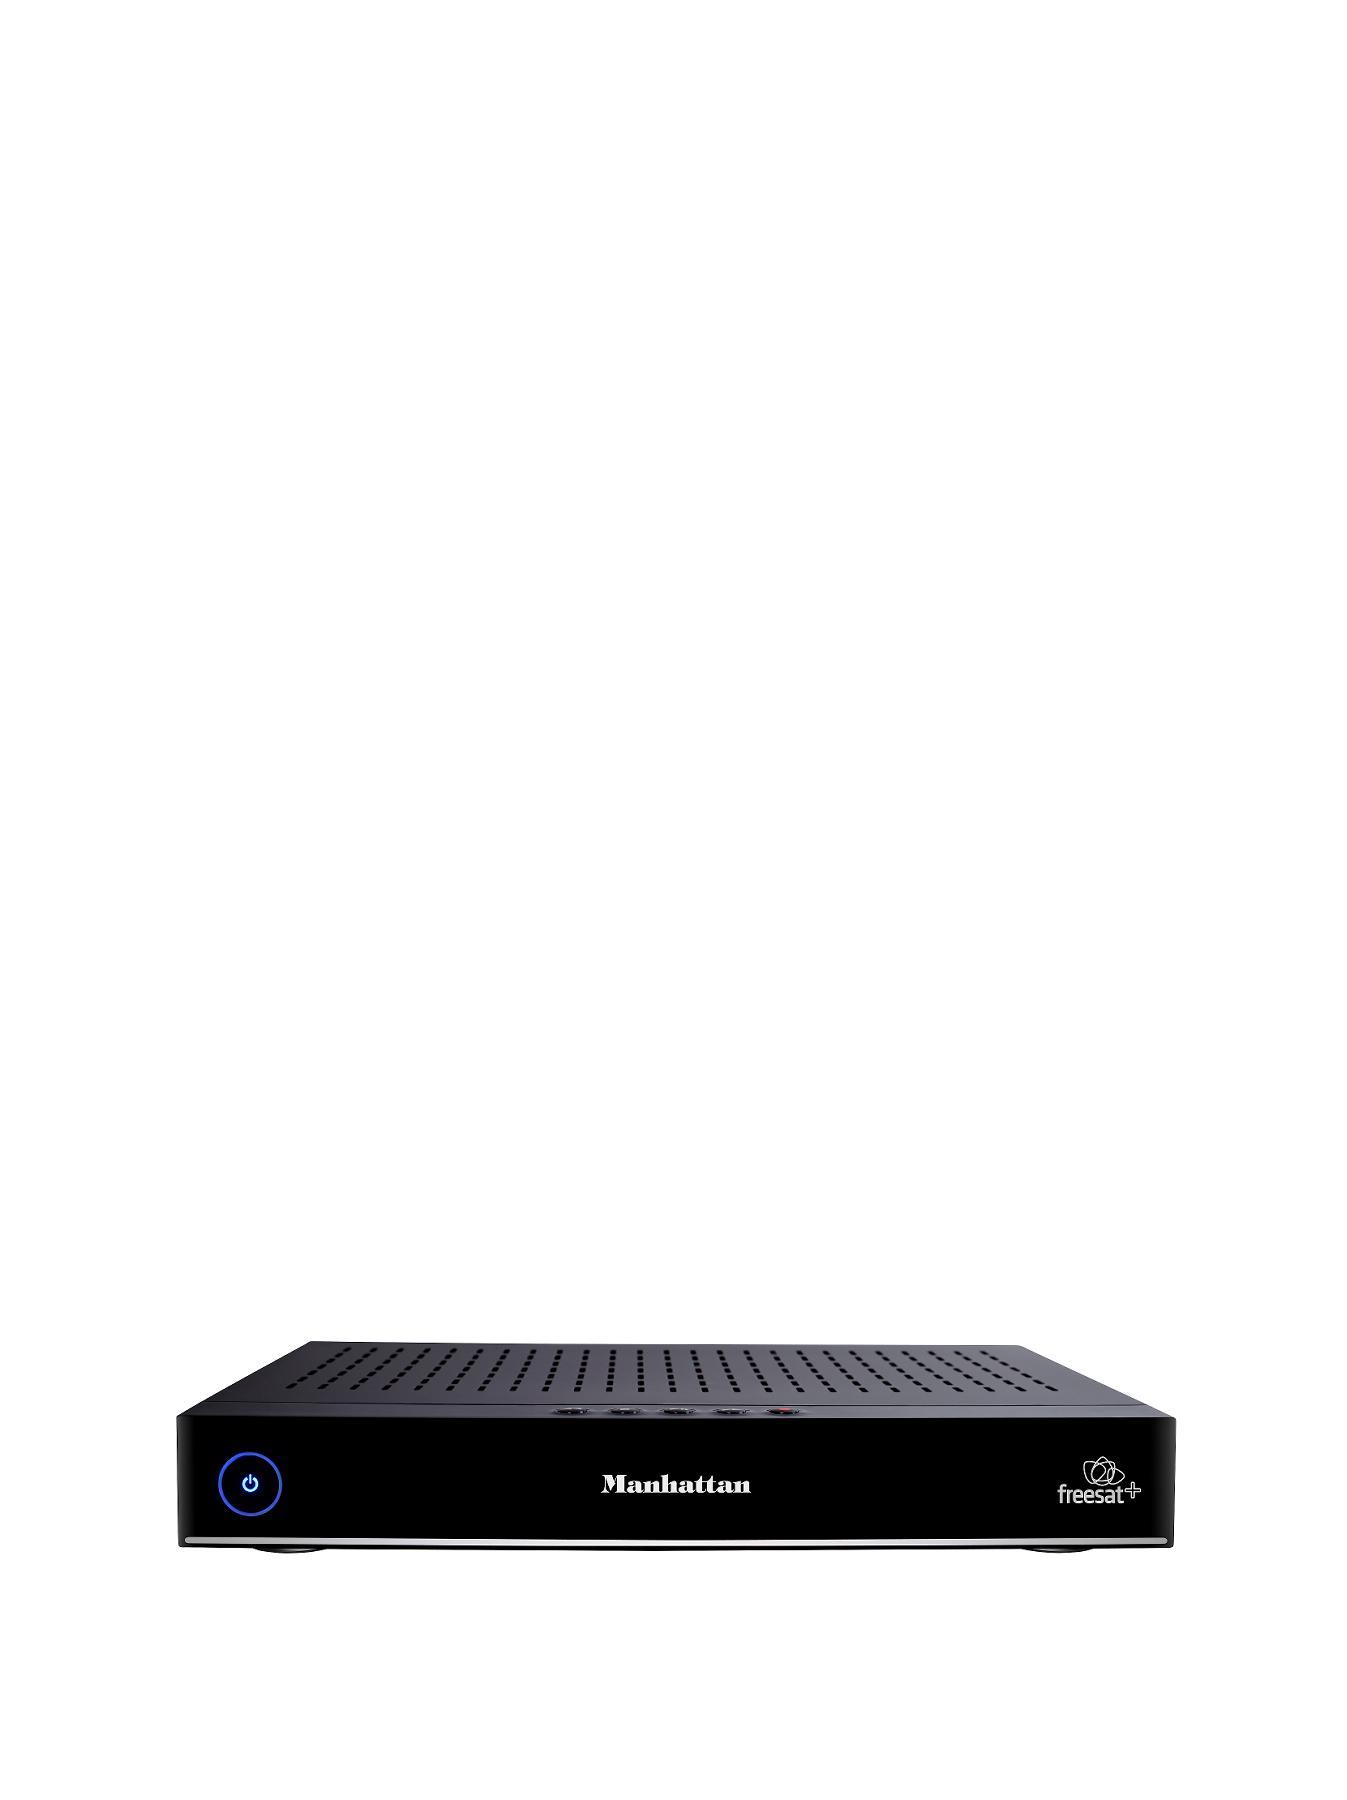 Plaza HDR-S Freesat 500Gb HD Recorder